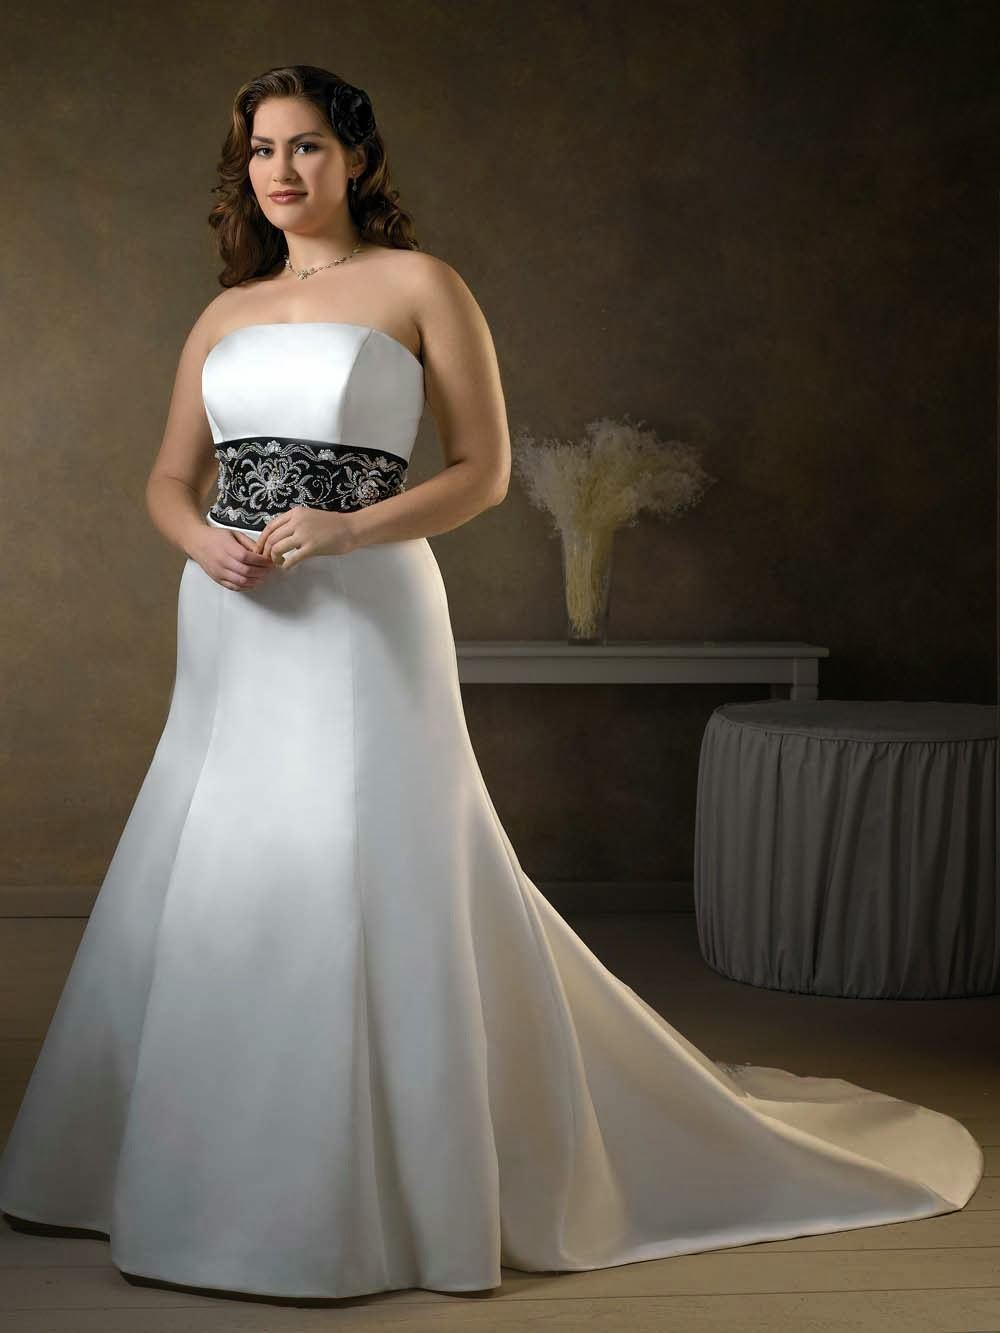 used wedding gown get high quality plus size dress with